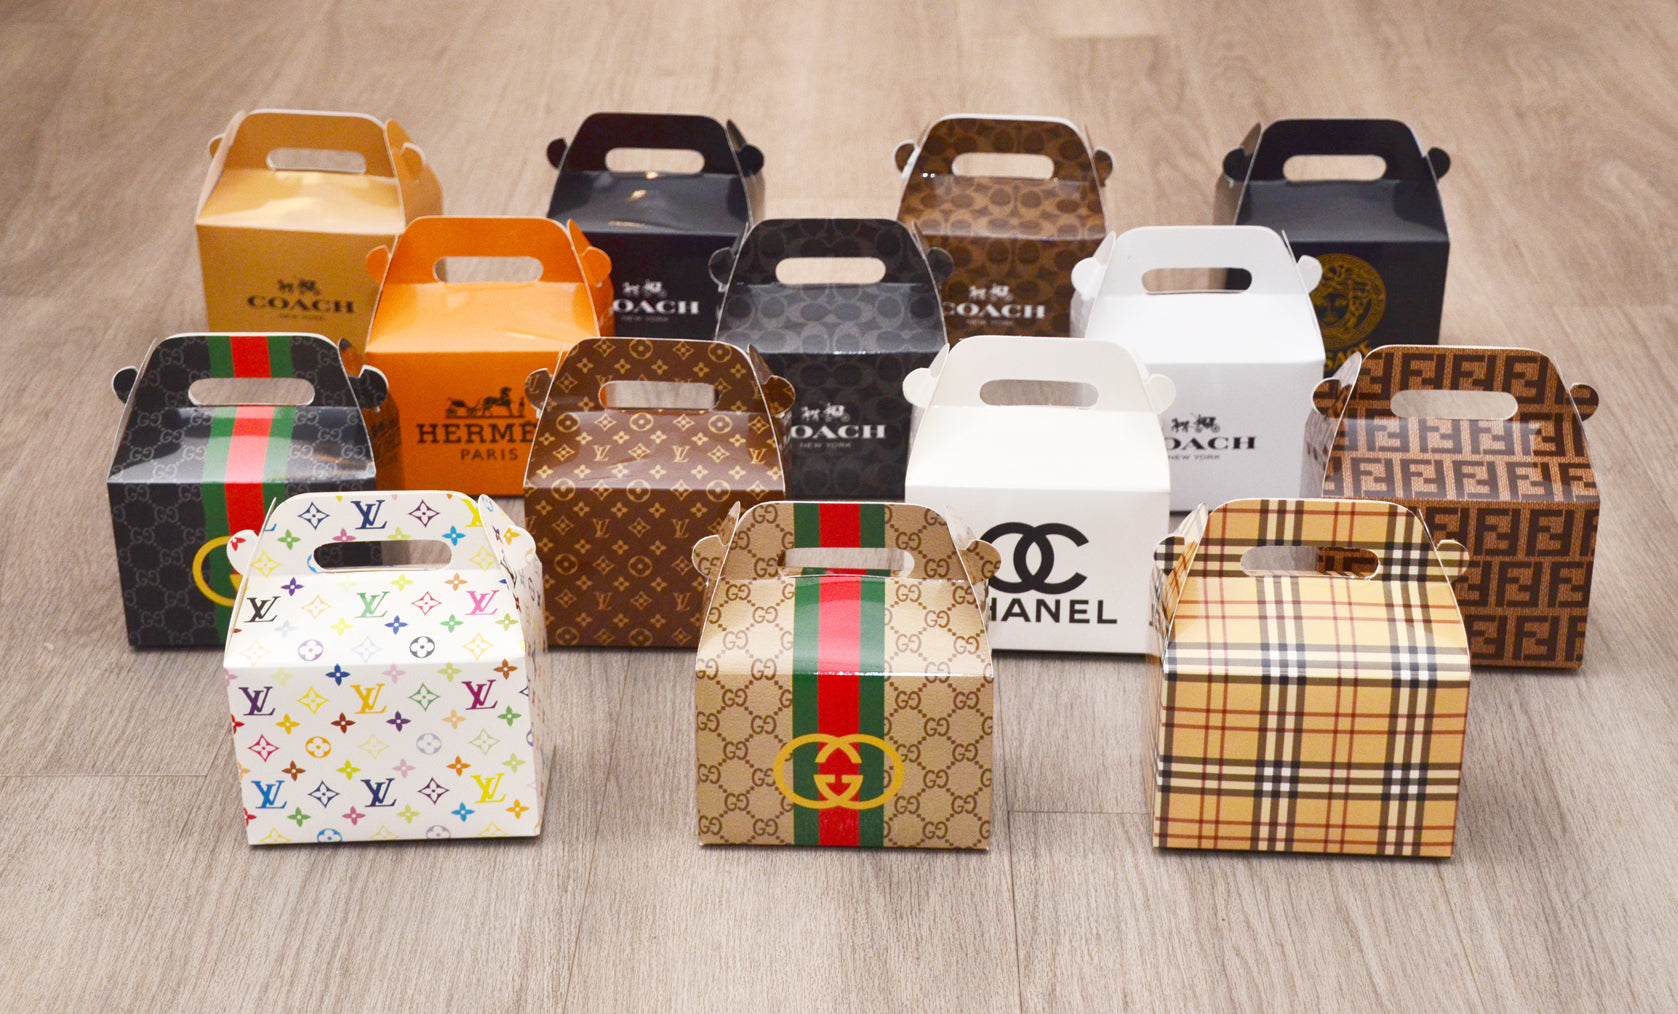 Gucci / Louis Vuitton / Burberry / Fendi / Chanel / Hermes / Versace / Coach Fashion Favor Boxes / Treat Boxes / Gift Boxes